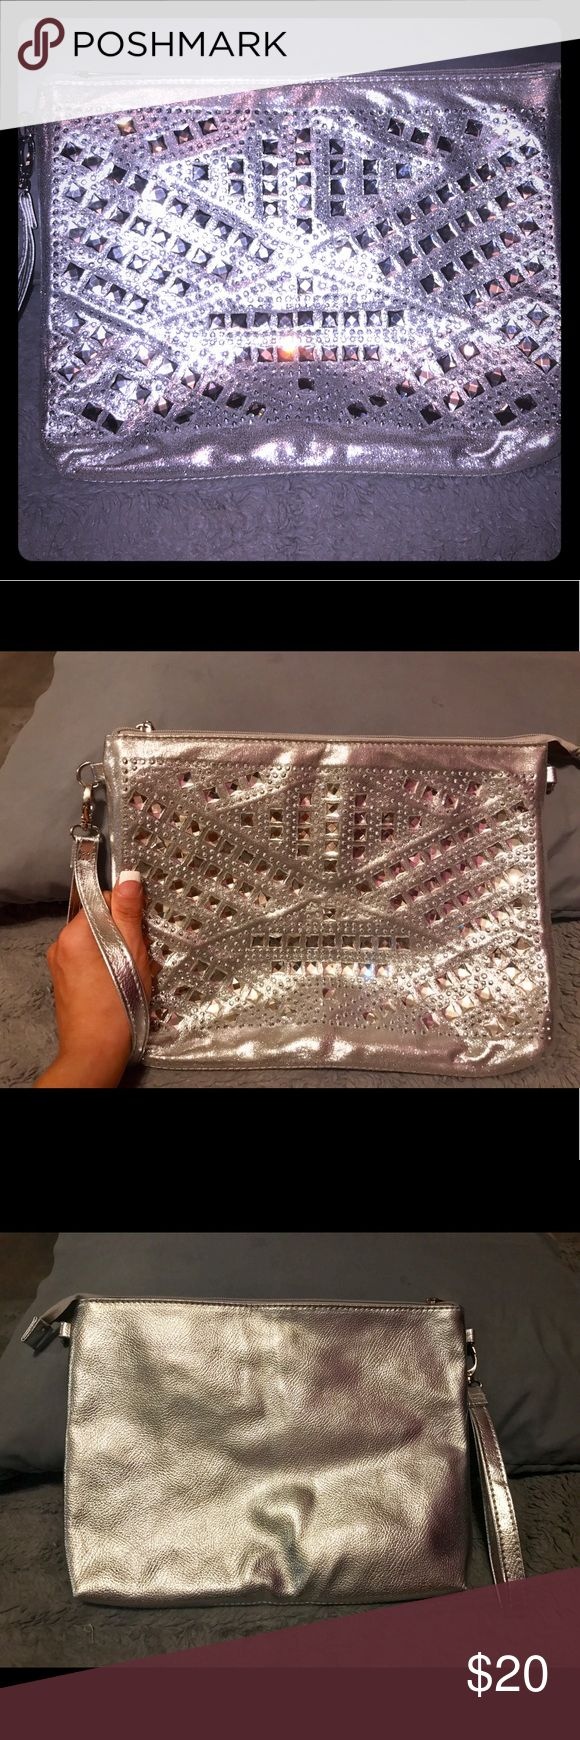 Bling &silver large clutch bag Brand new! Gorgeous bling clutch with rhinestones. So shiny and pretty . Goes with everything and fits makeup, phone, even. Full size wallet and more Bags Clutches & Wristlets